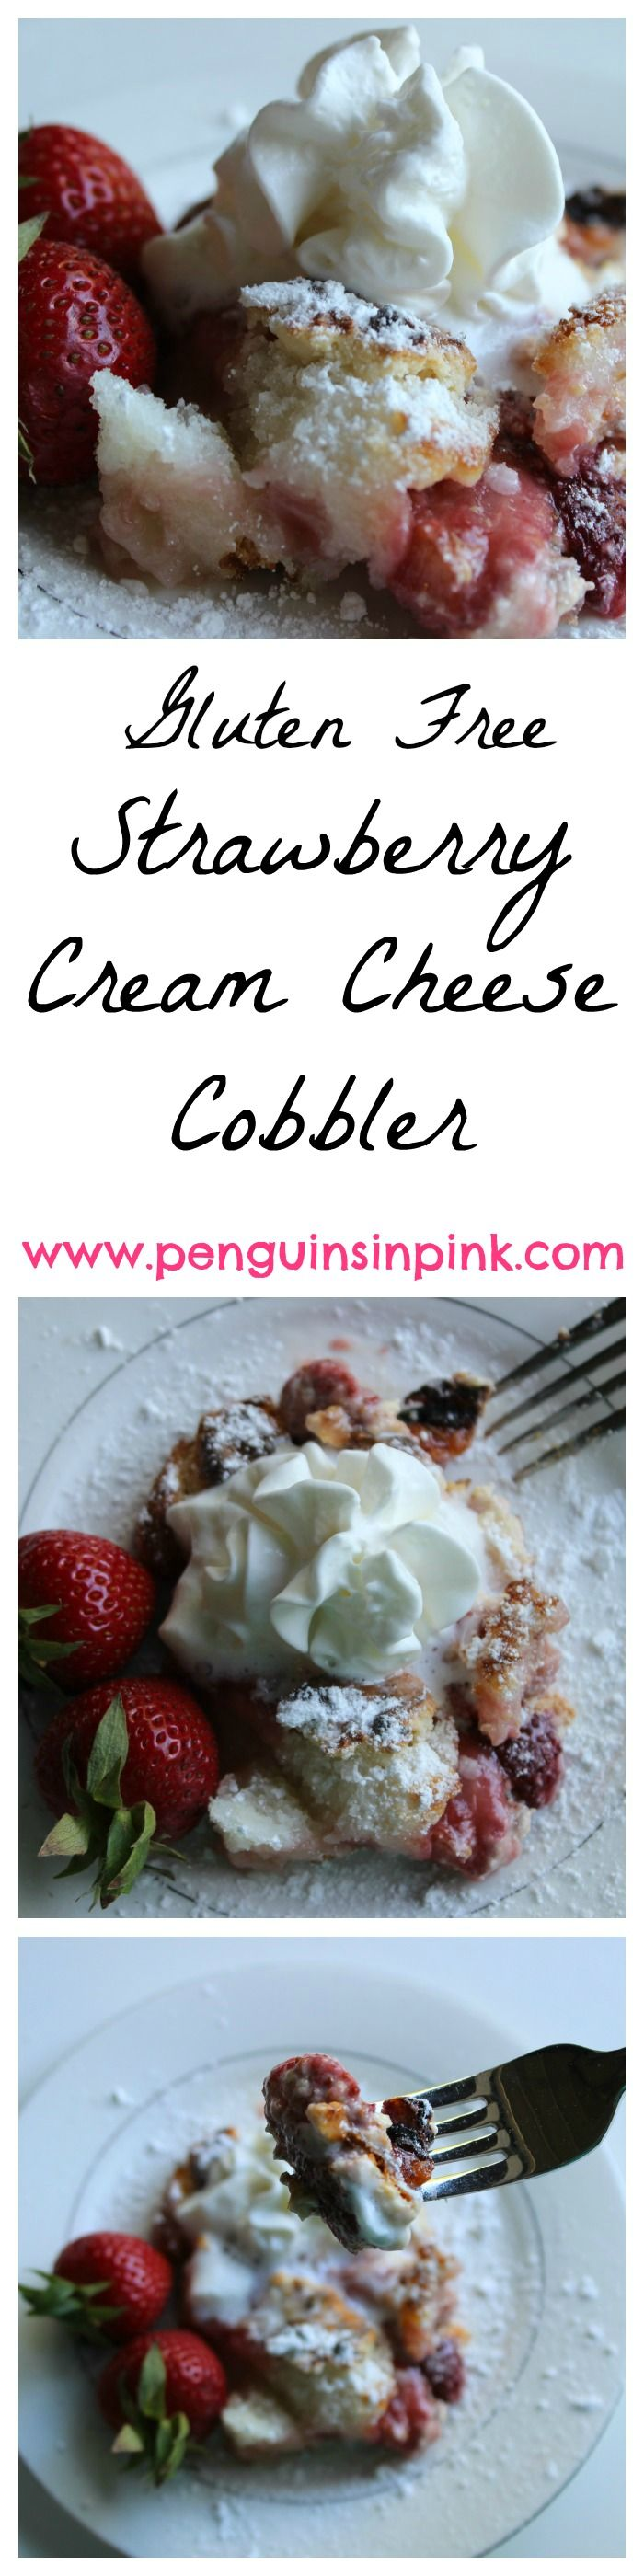 Strawberry Cream Cheese Cobbler {Gluten Free} - Sweet strawberries and smooth cream cheese mix enveloped with a flaky crust. Strawberry cream cheese cobbler is perfect for brunches, afternoon teas, or wedding and baby showers.